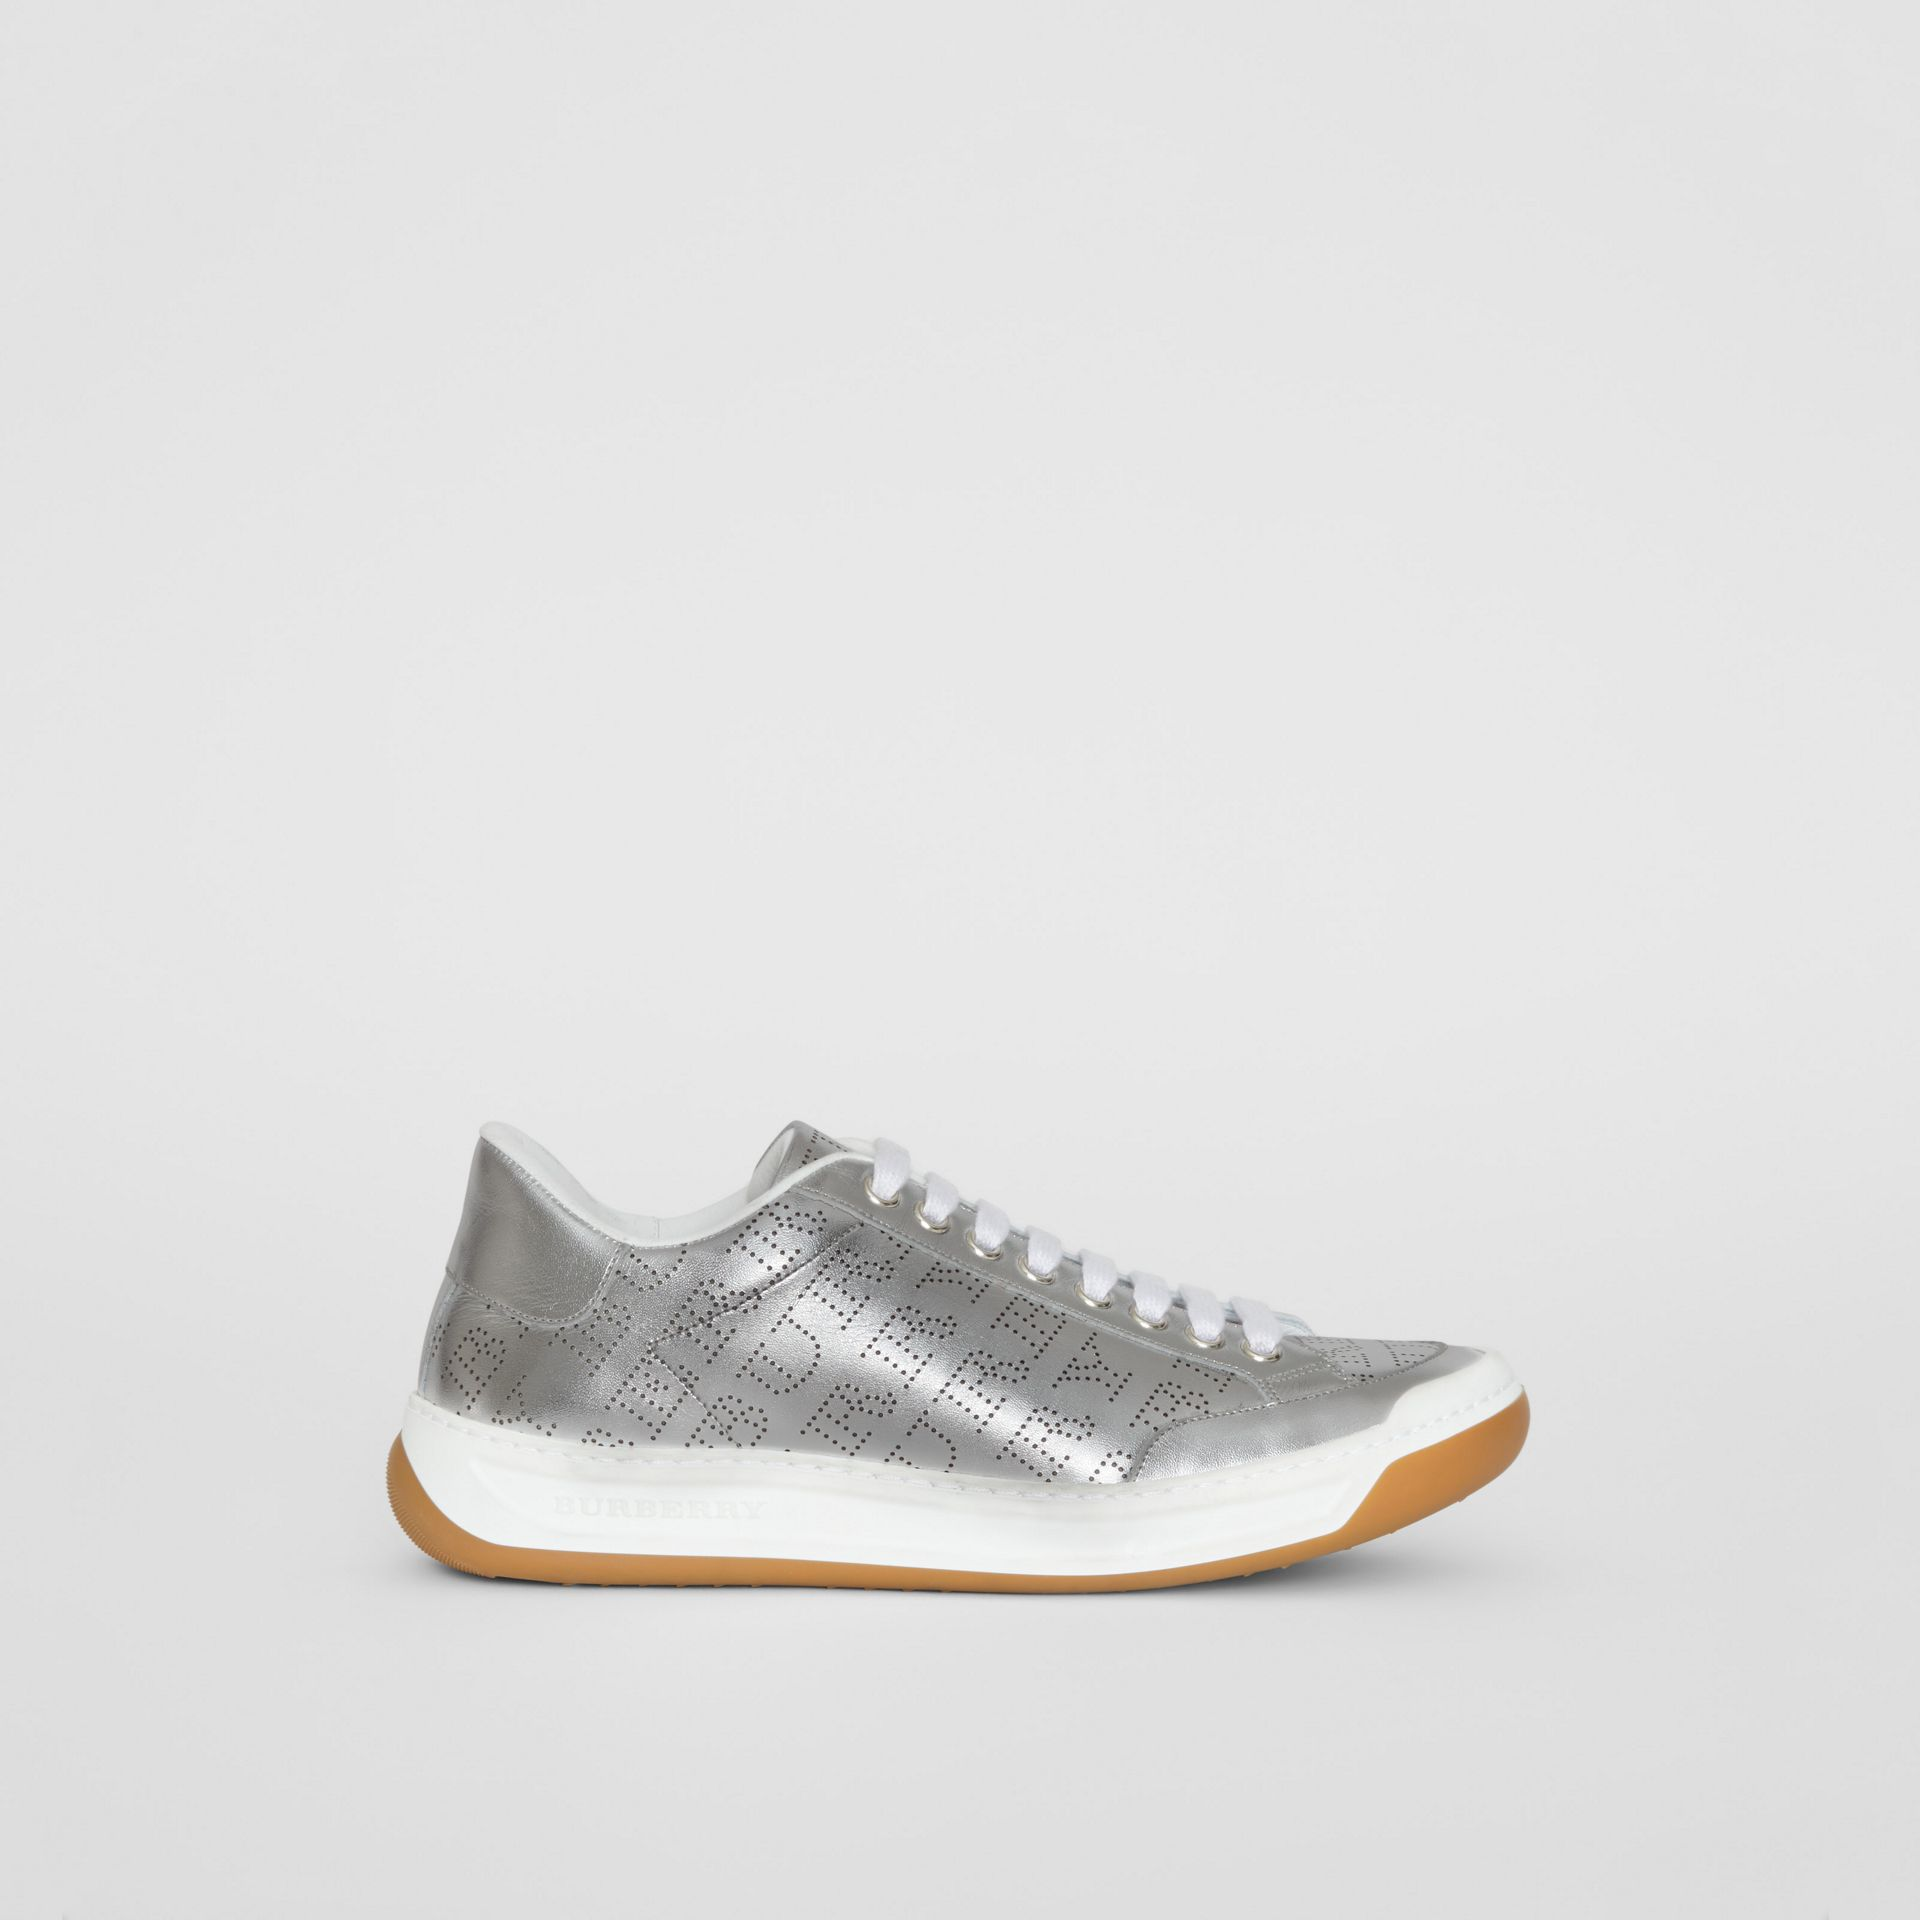 Perforated Logo Metallic Leather Sneakers in Silver Grey - Women | Burberry United States - gallery image 5